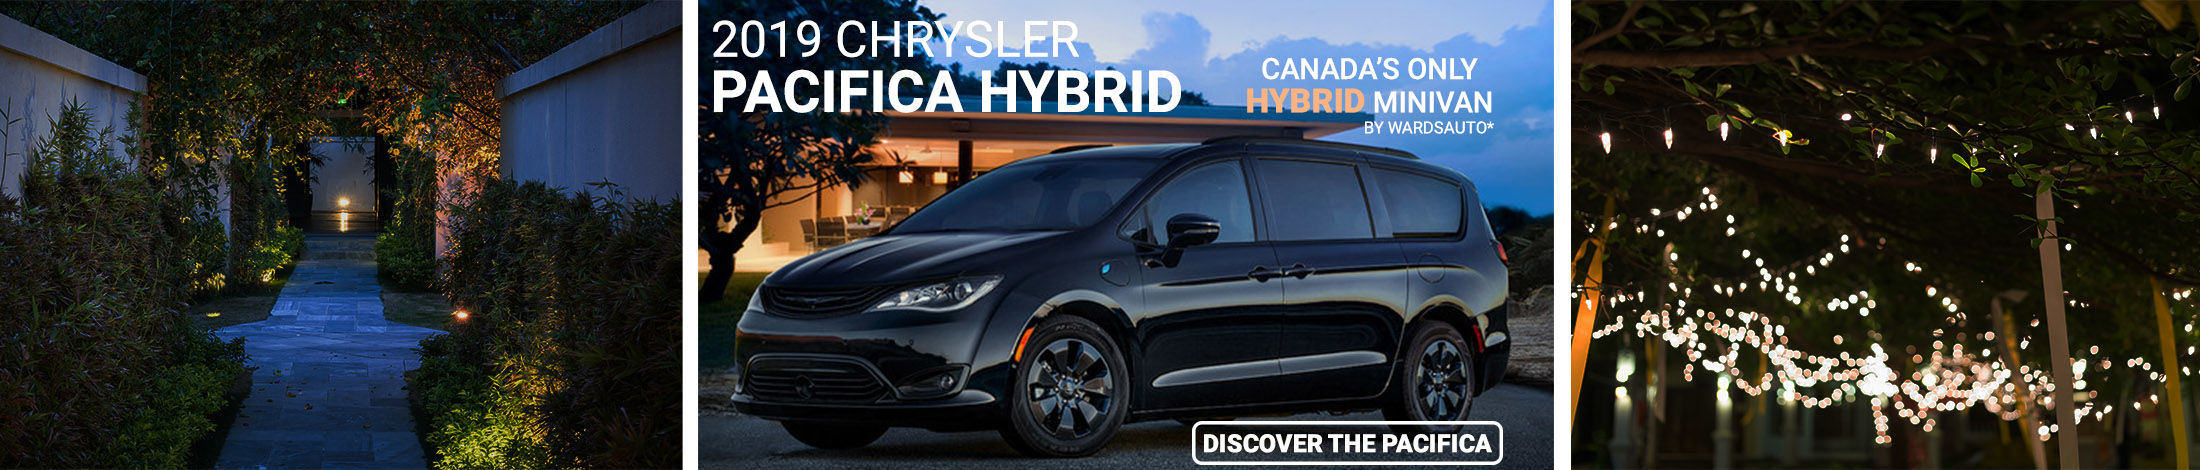 2019 Hybrid Pacifica